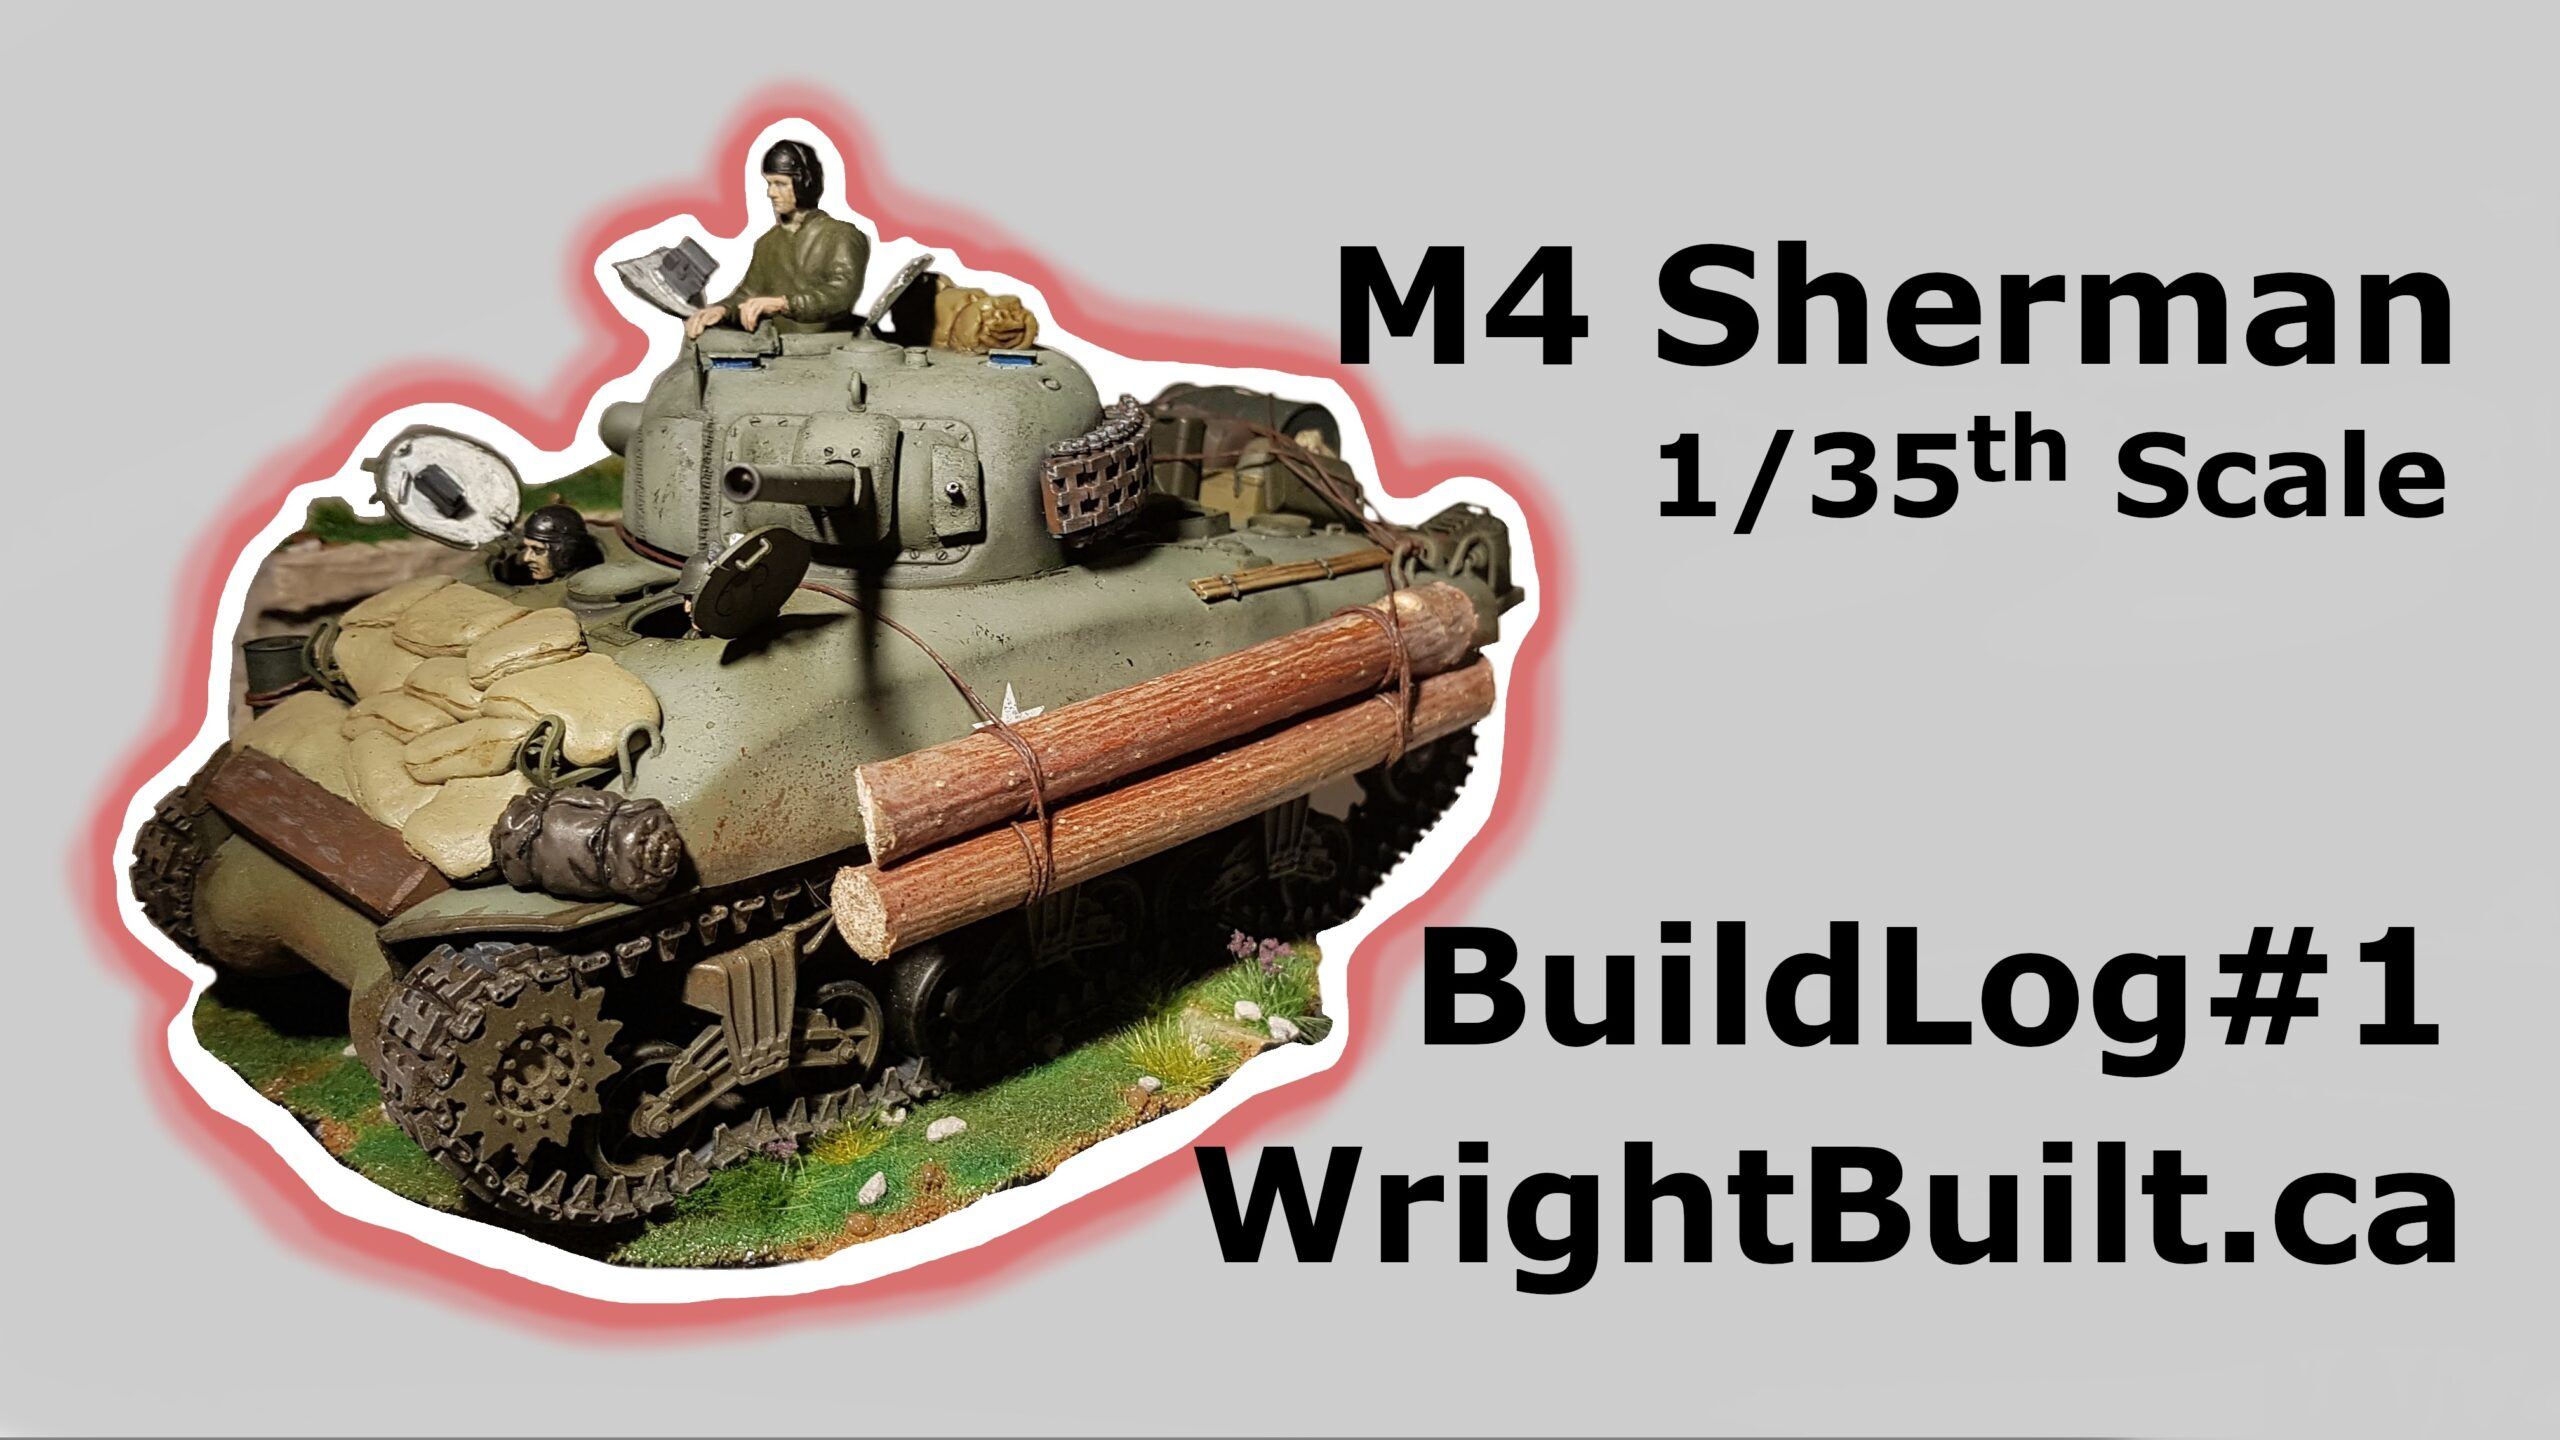 Kitbashed M4 Sherman Model | 1/35th Scale | BuildLog #1 | WrightBuilt.ca